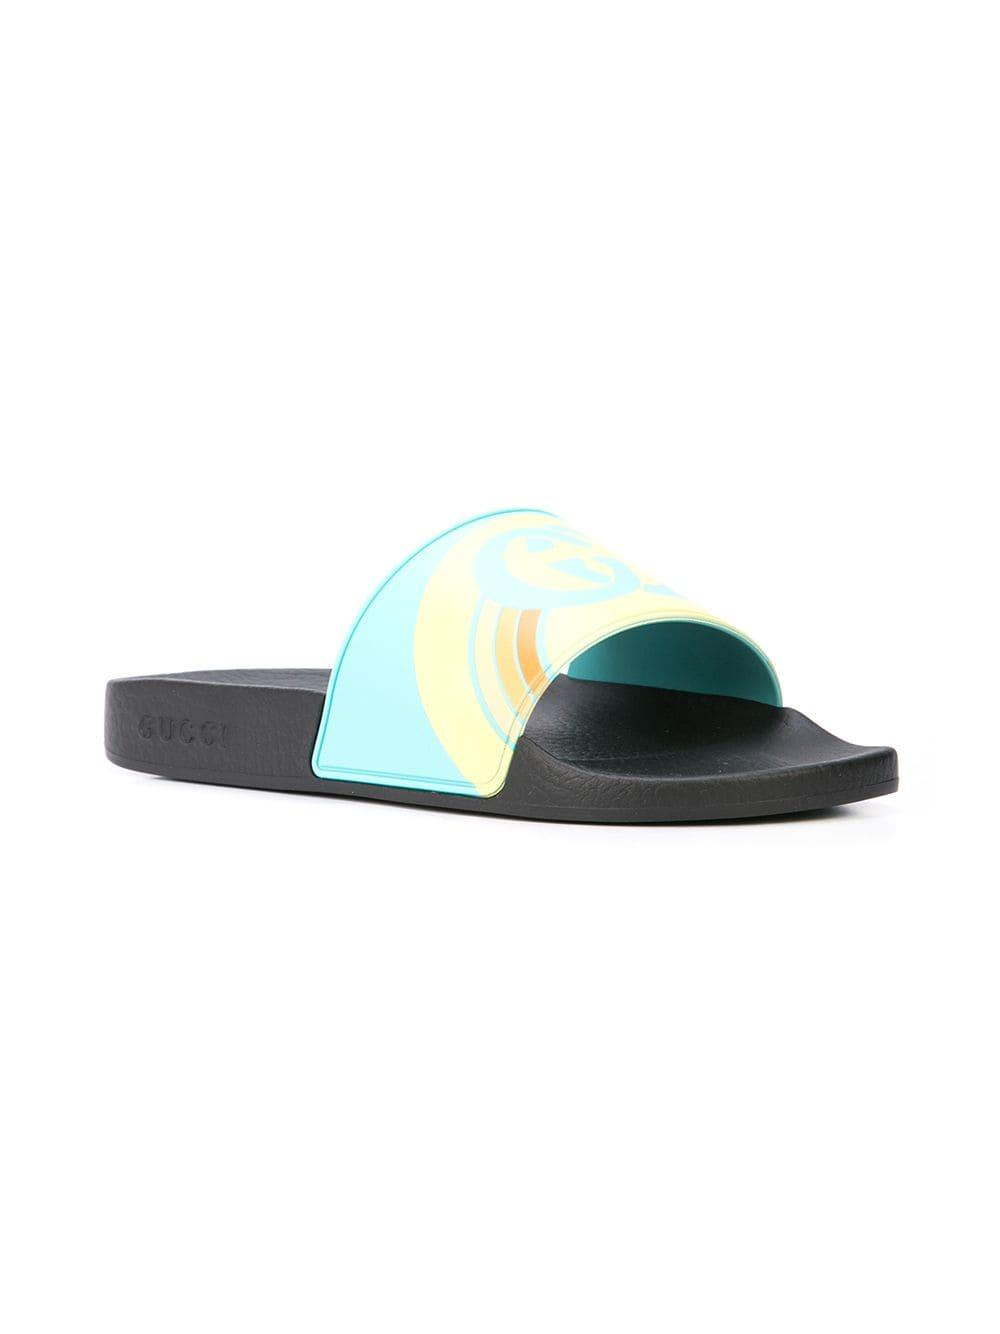 bd88785d240 Gucci - Blue Pursuit Logo Slides for Men - Lyst. View fullscreen